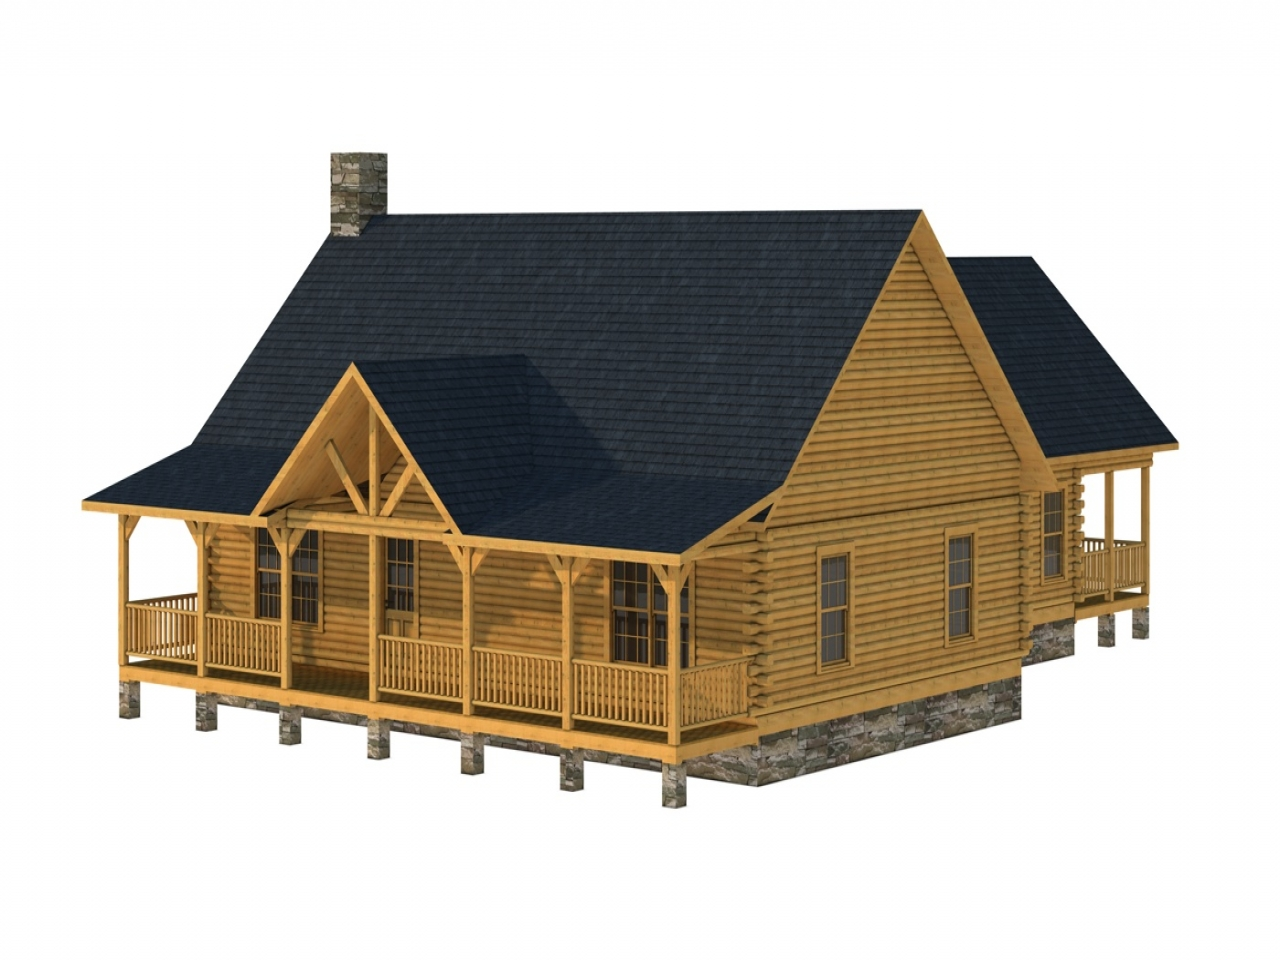 3 Story Log Home Plans Southland Log Homes Floor Plan